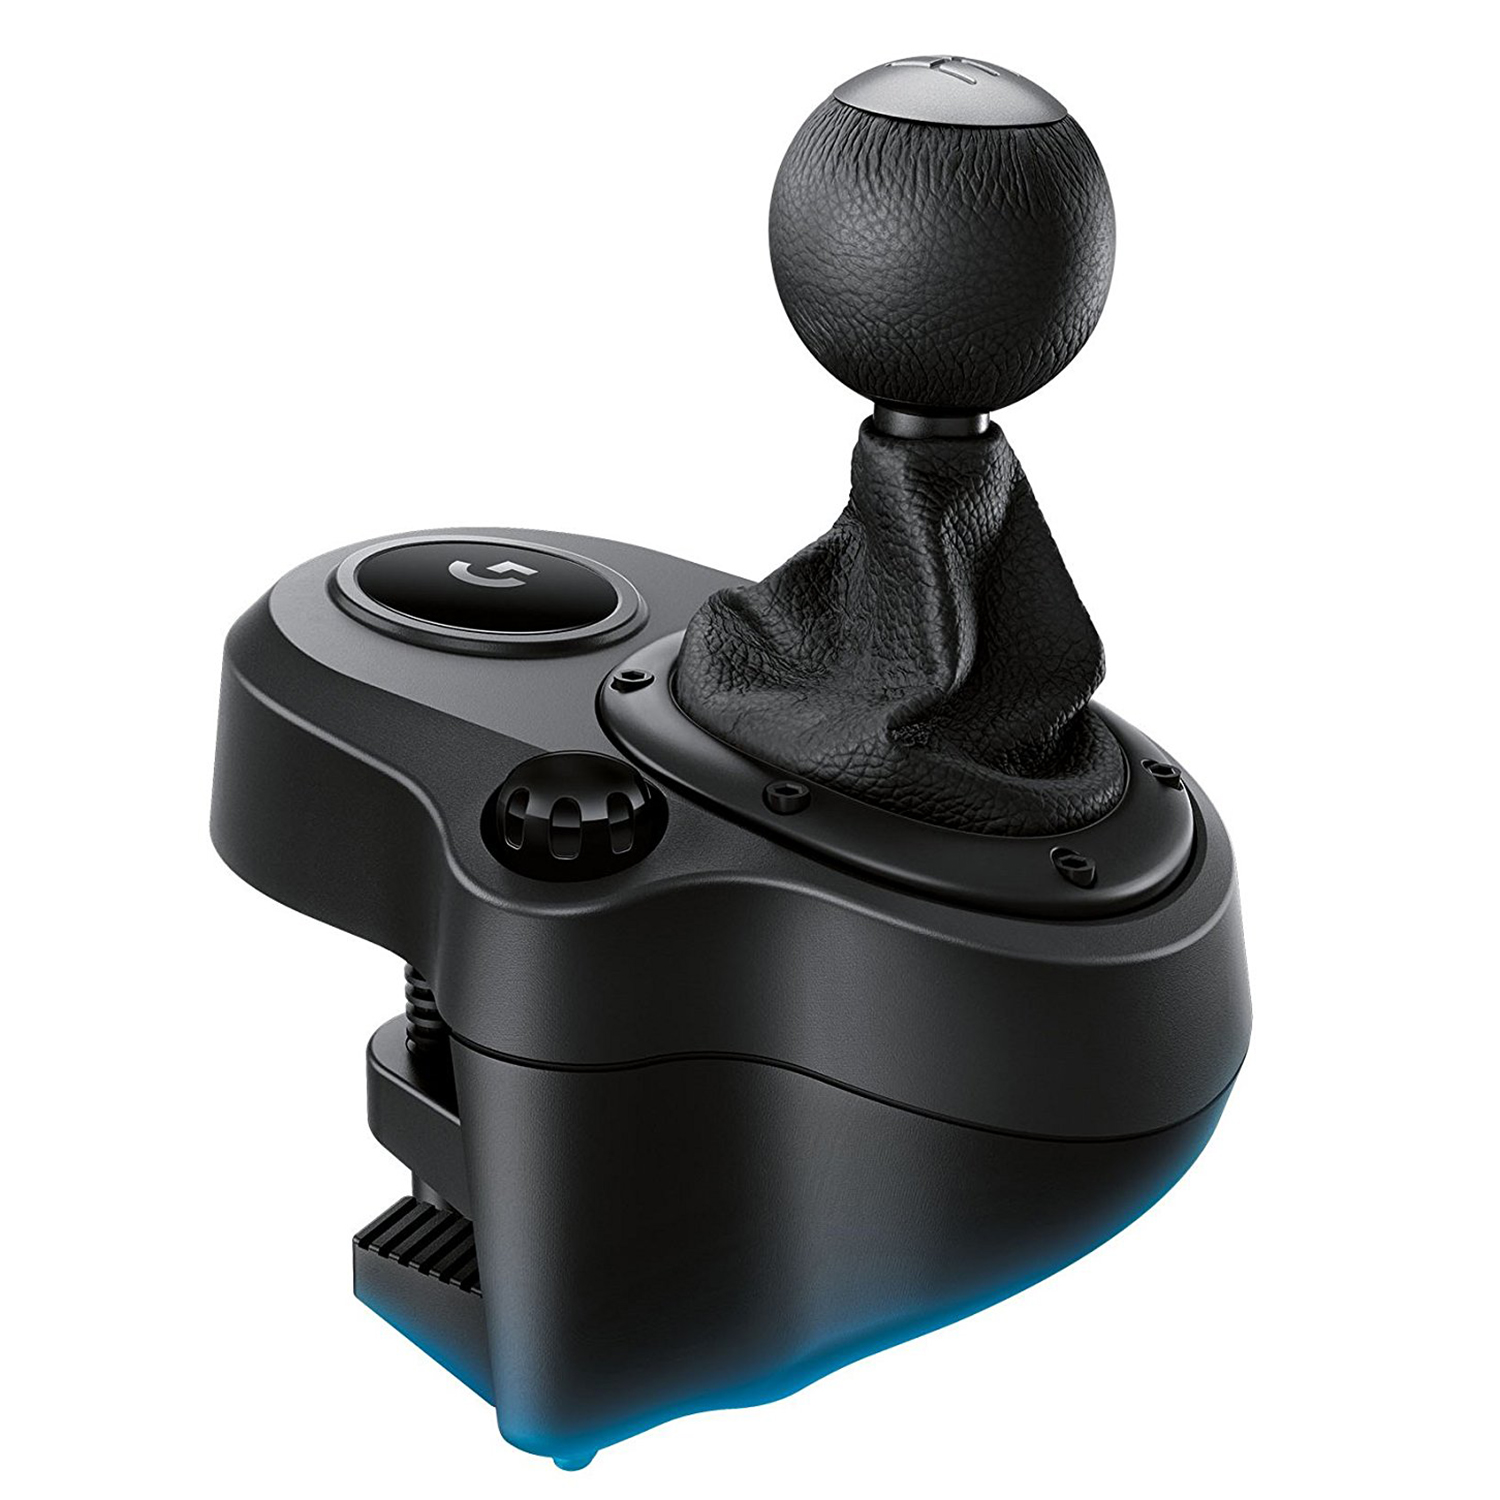 Logitech G Driving Force Shifter For G29 And G920 Driving Force Racing Wheels